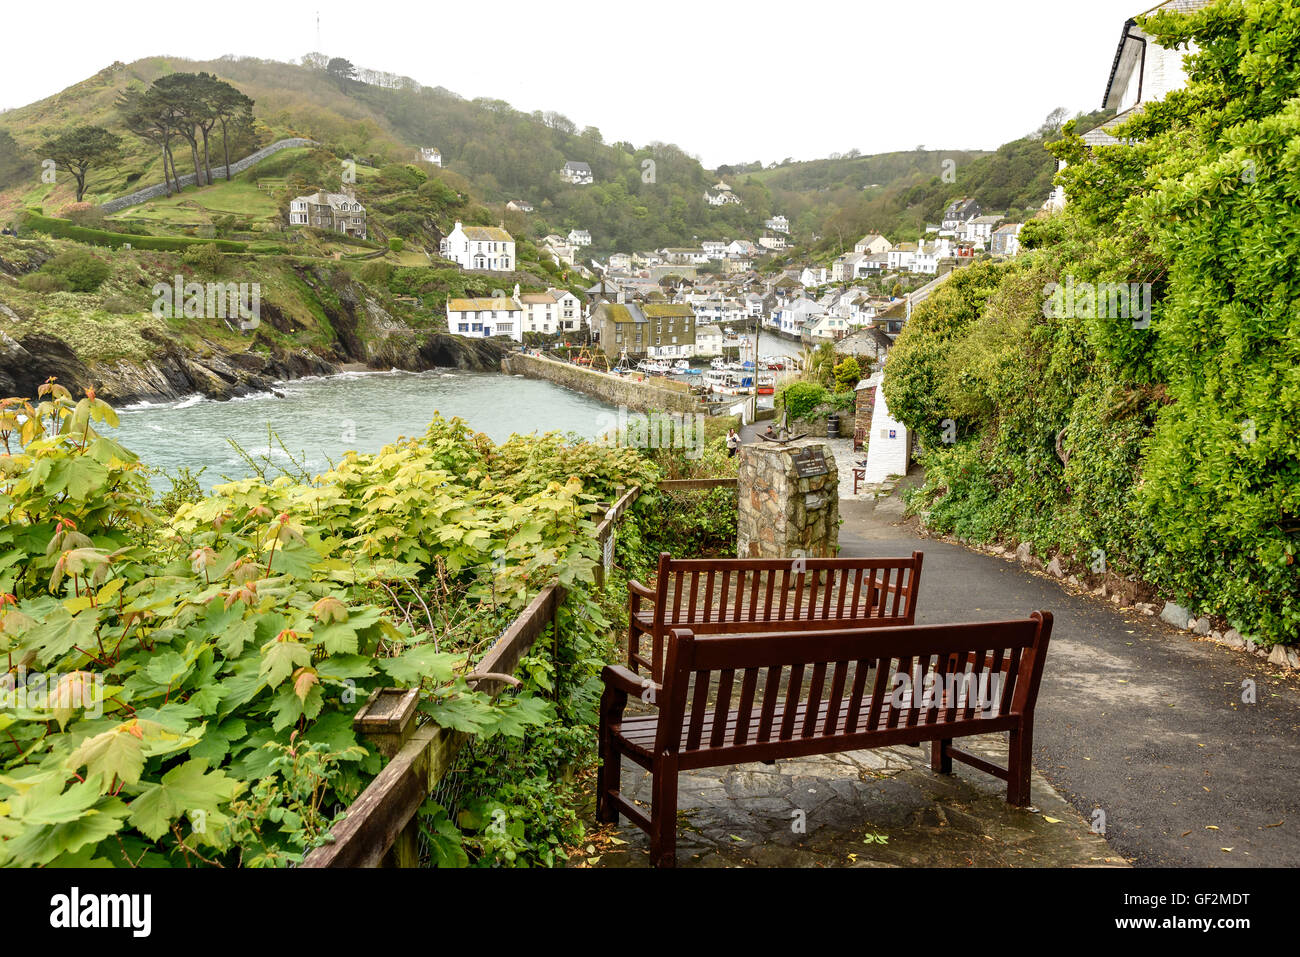 Polperro in Cornwall One of the most popular places in Cornwall, the village of Polperro is undoubtedly one of the - Stock Image